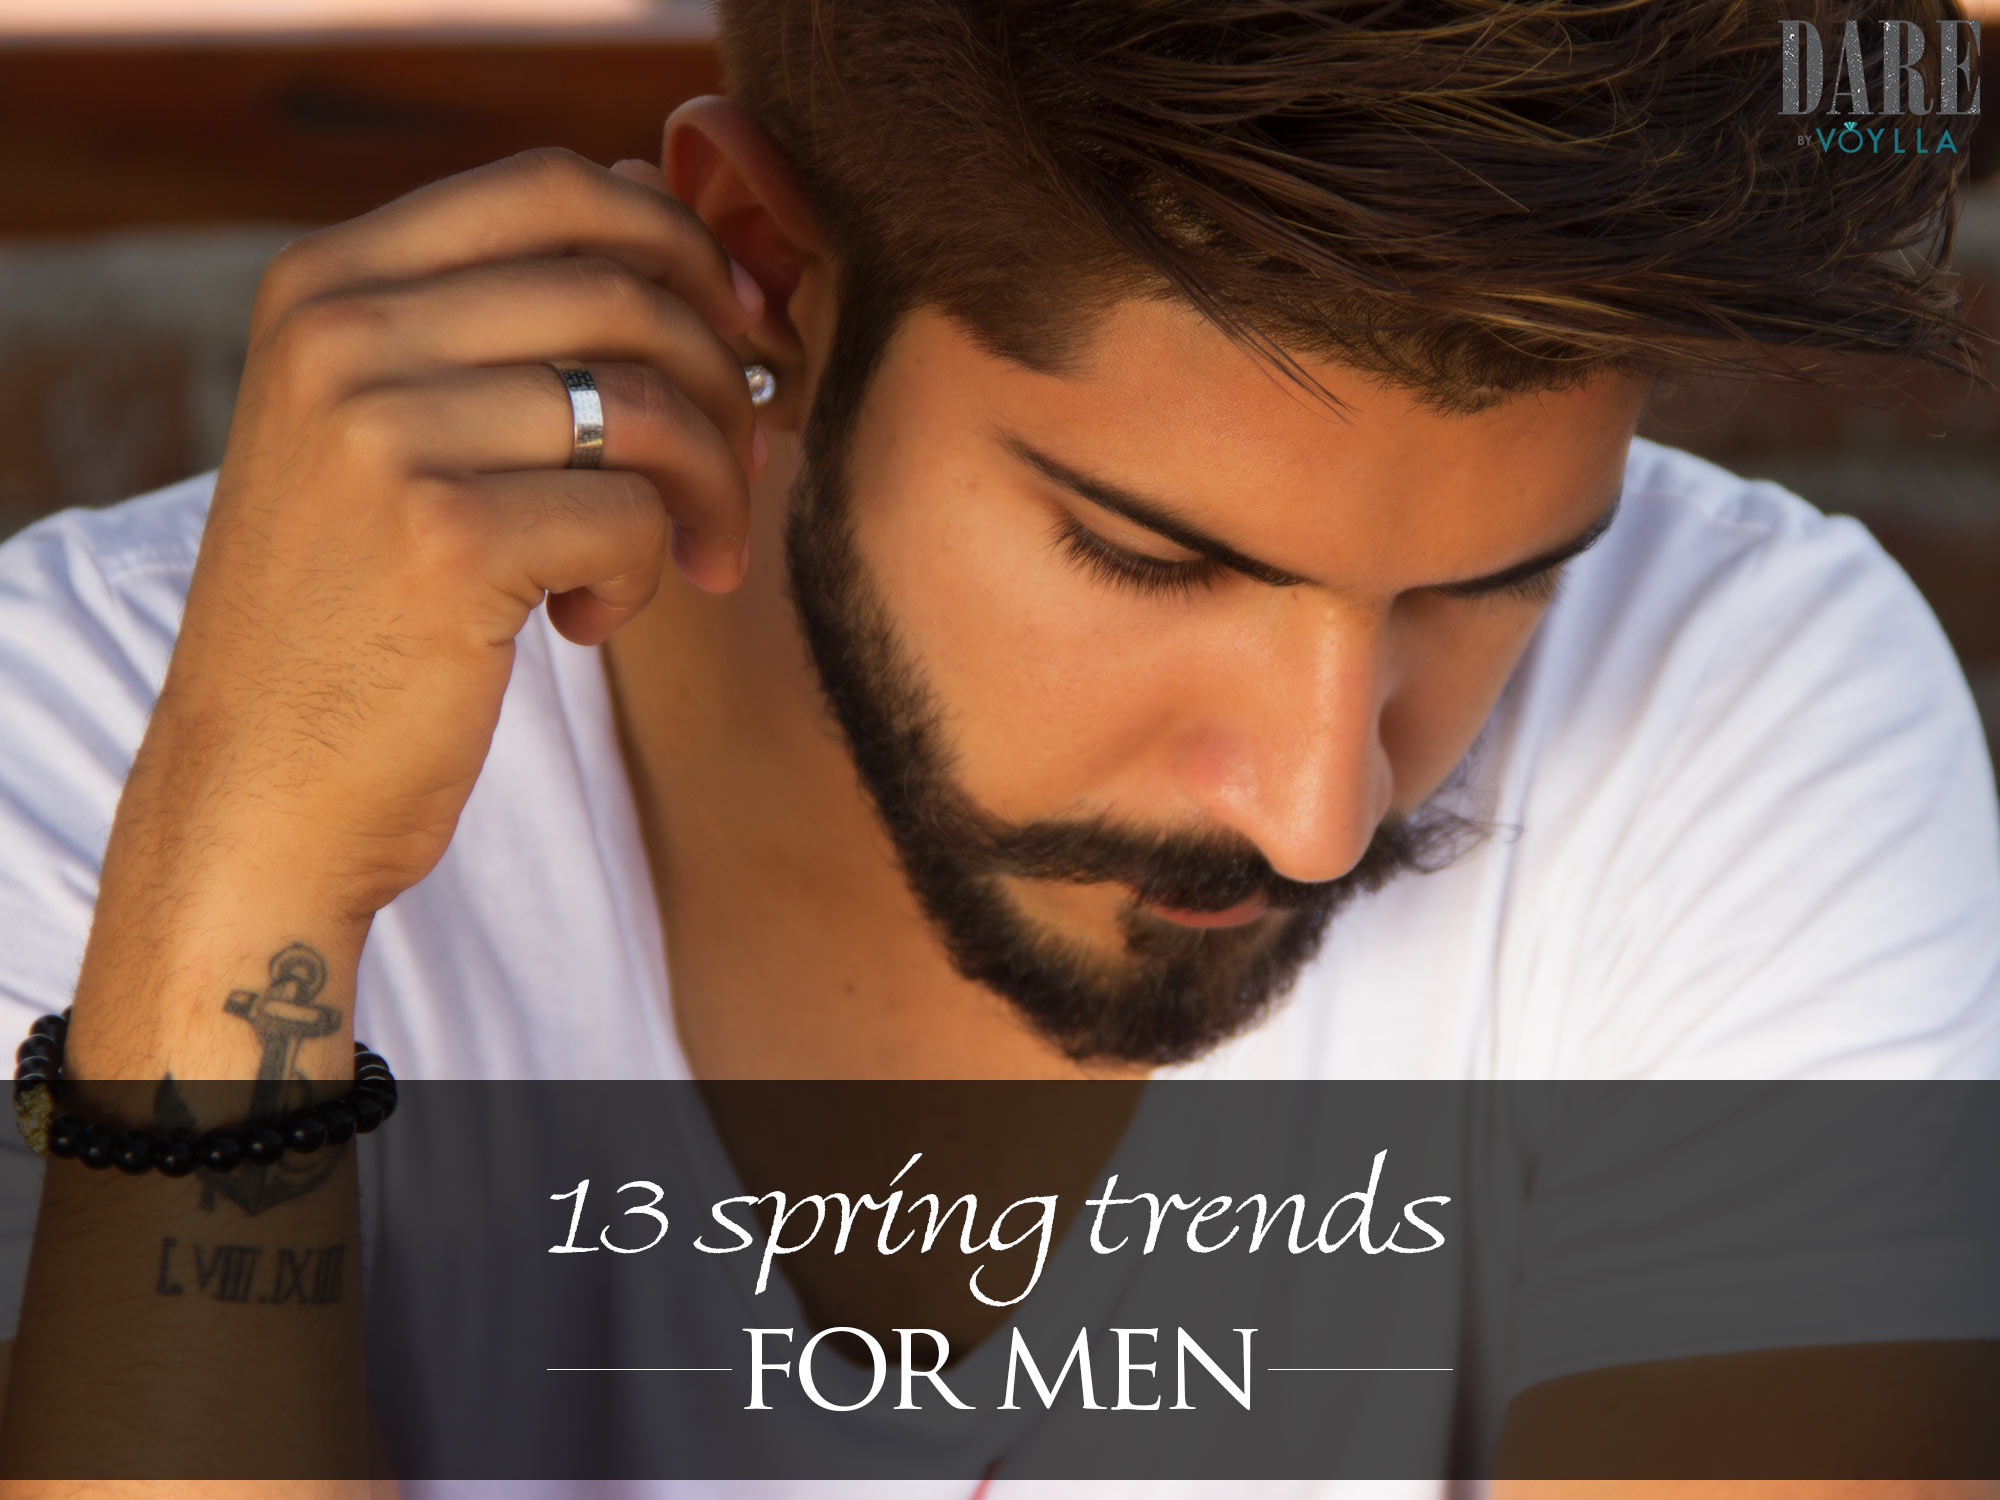 13-spring-trends-for-men